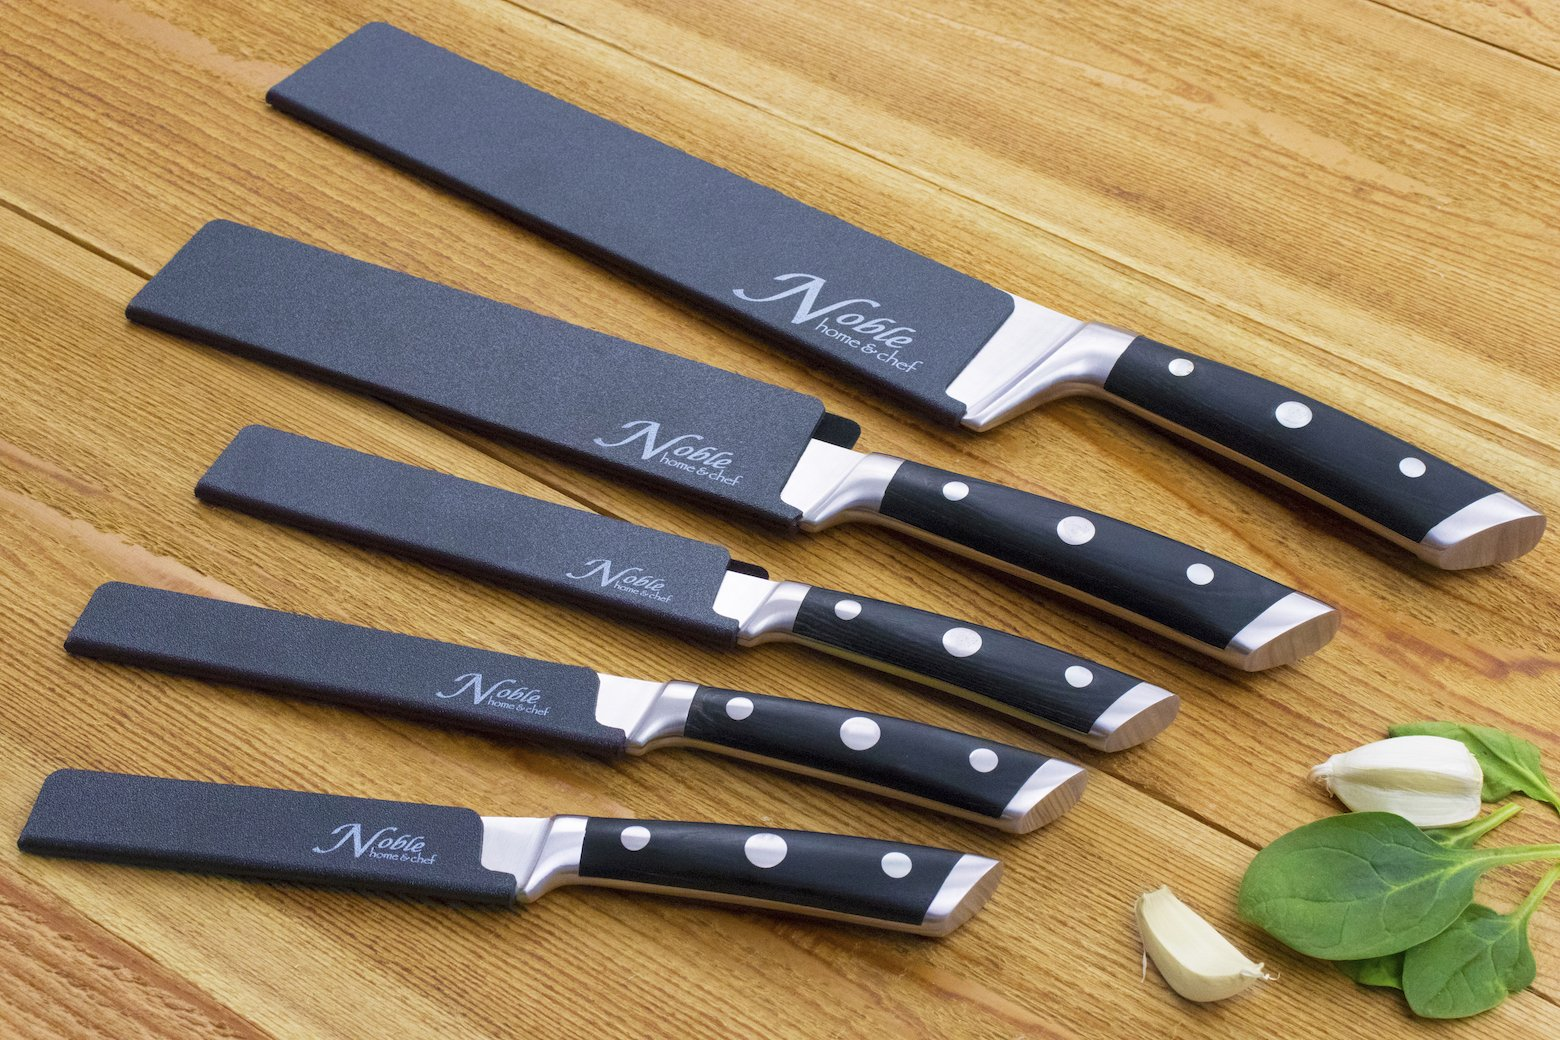 5-Piece Universal Knife Edge Guards are More Durable, BPA-Free, Gentle on Your Blades, and Long-Lasting. Noble Home & Chef Knife Covers Are Non-Toxic and Abrasion Resistant! (Knives Not Included) by Noble Home & Chef (Image #7)